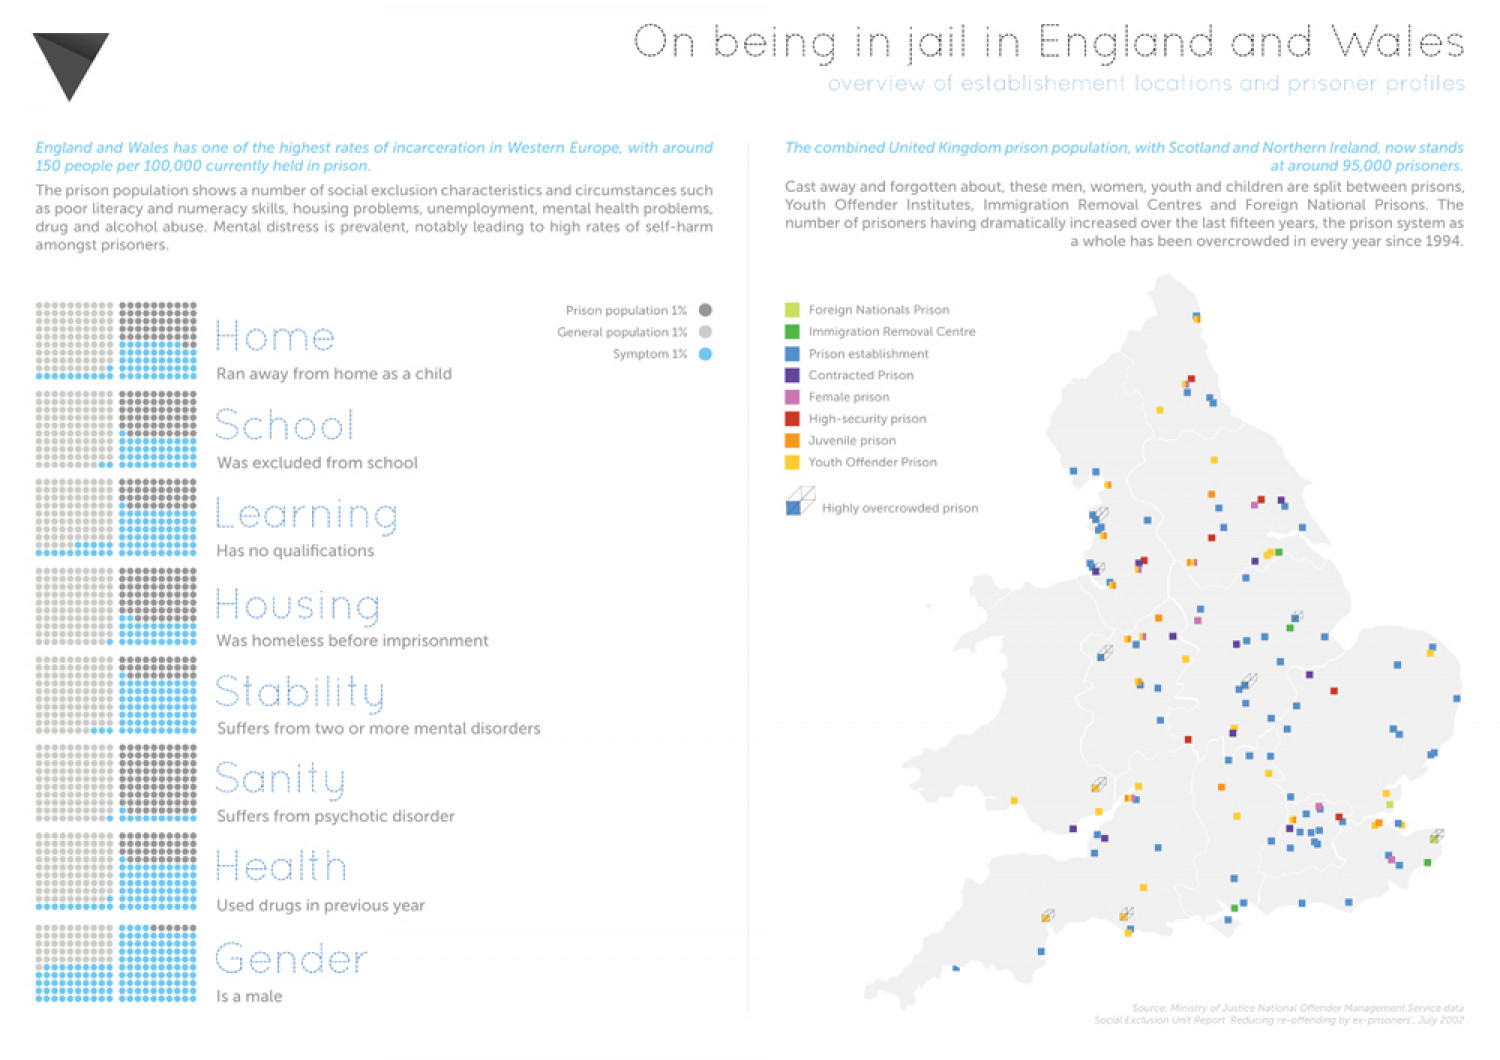 Jailed: Incarceration in England and Wales Infographic